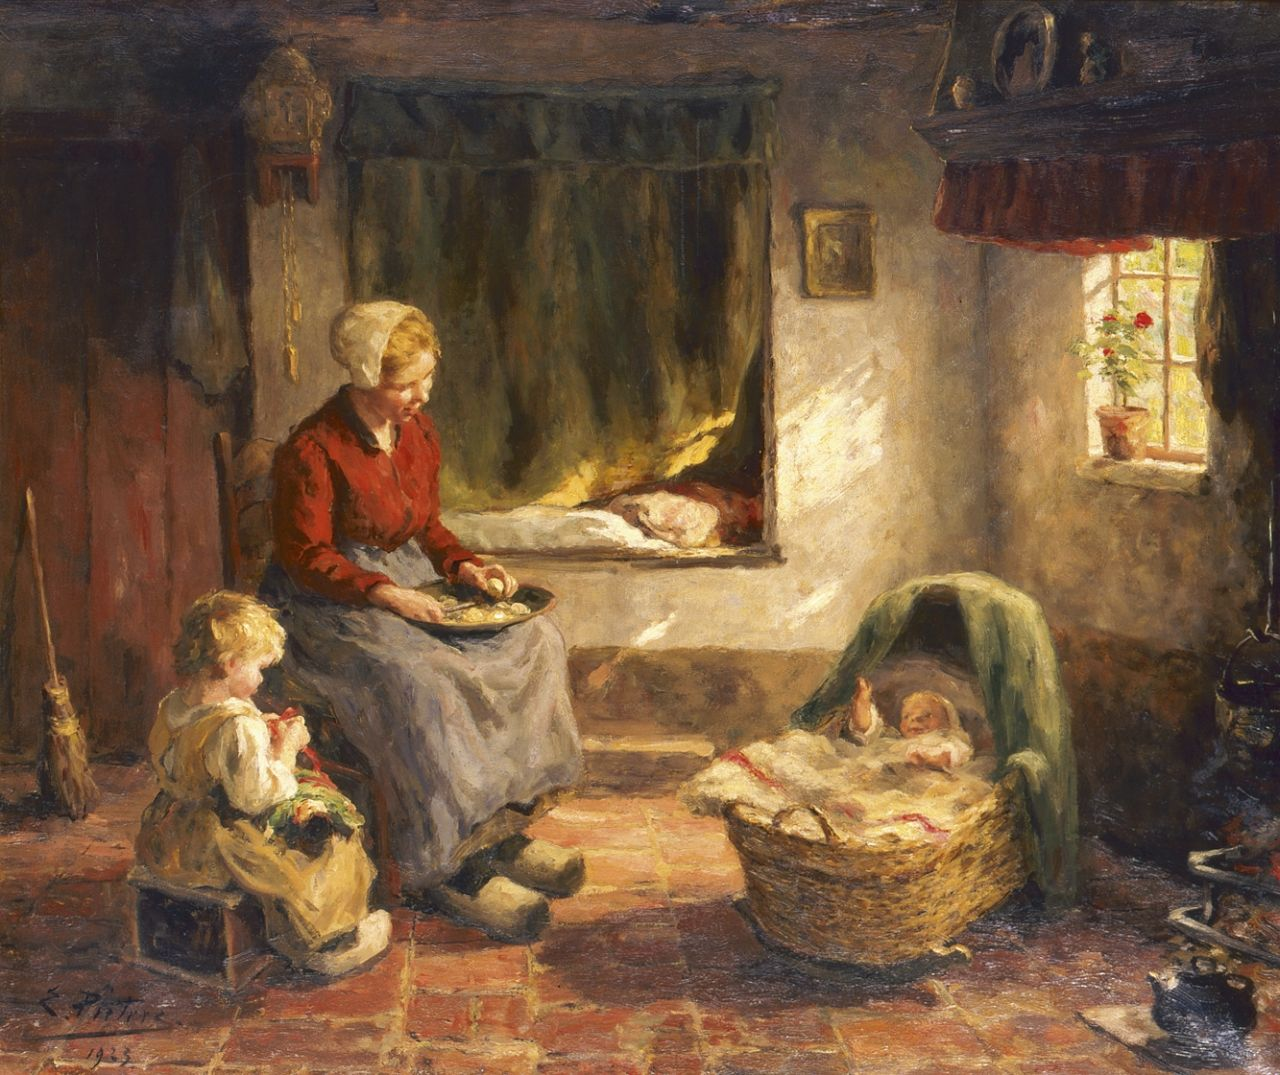 Pieters E.  | Evert Pieters, A happy family, oil on canvas 78.2 x 92.3 cm, signed l.l. and dated 1923